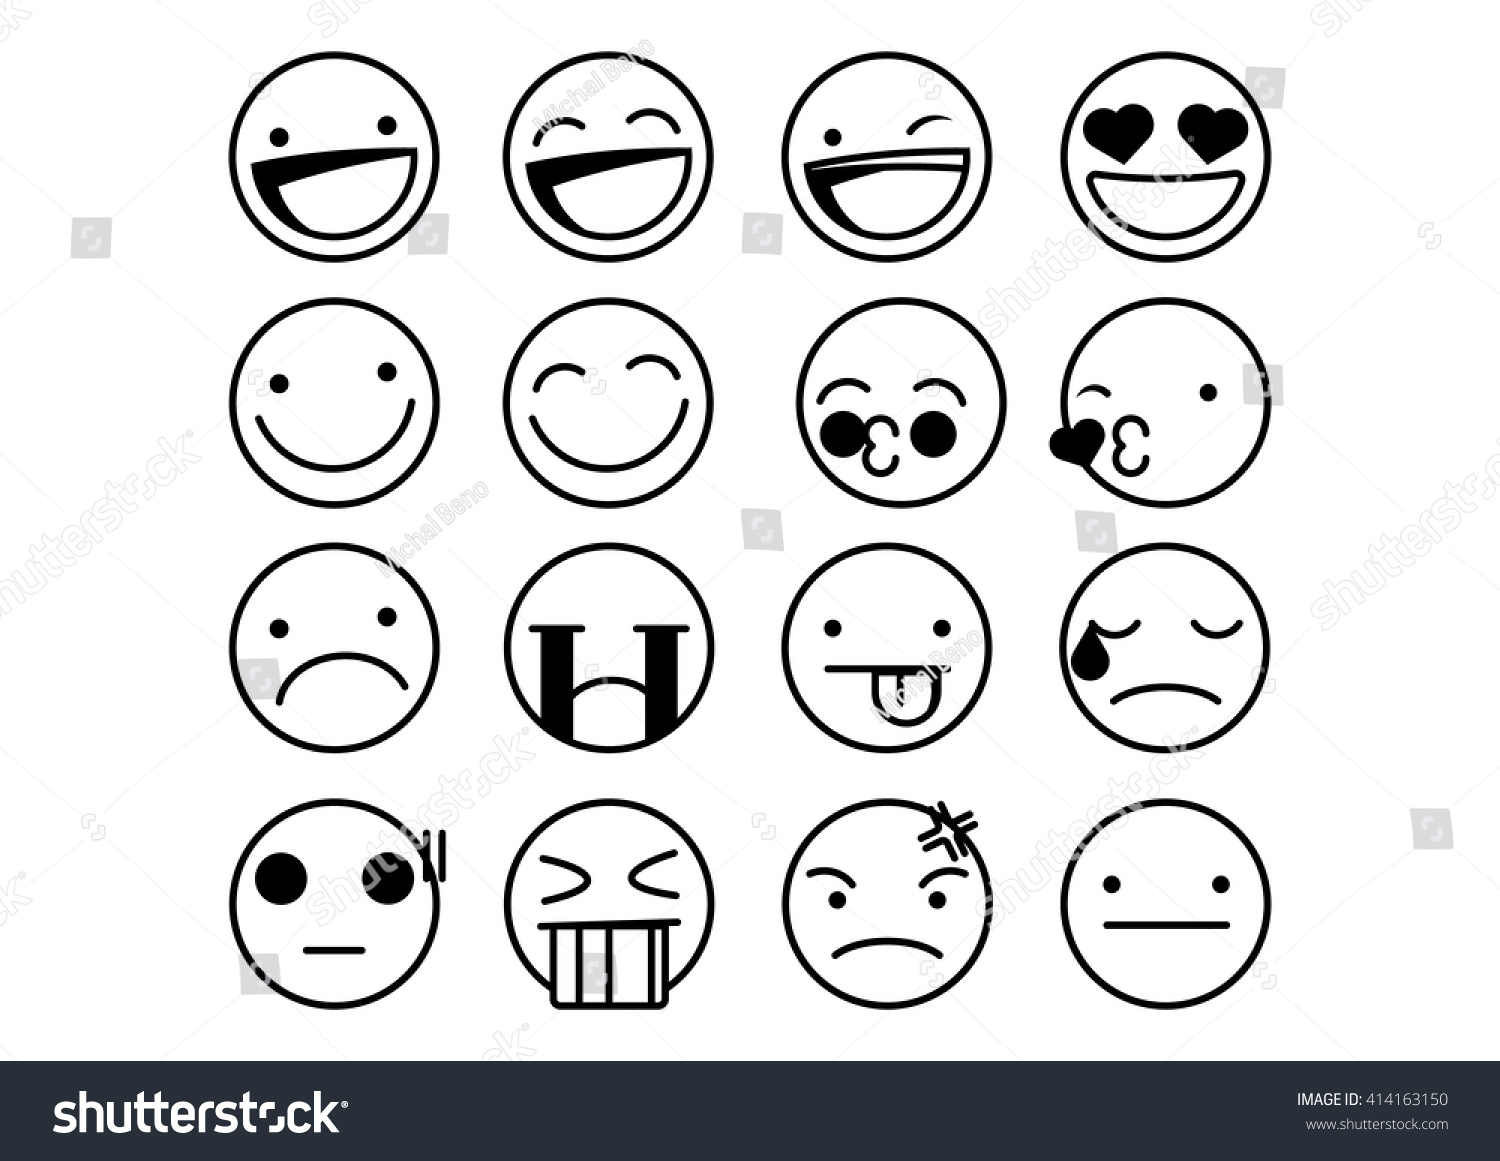 Set of black and white emoticons emoji isolated on white background vector illustration